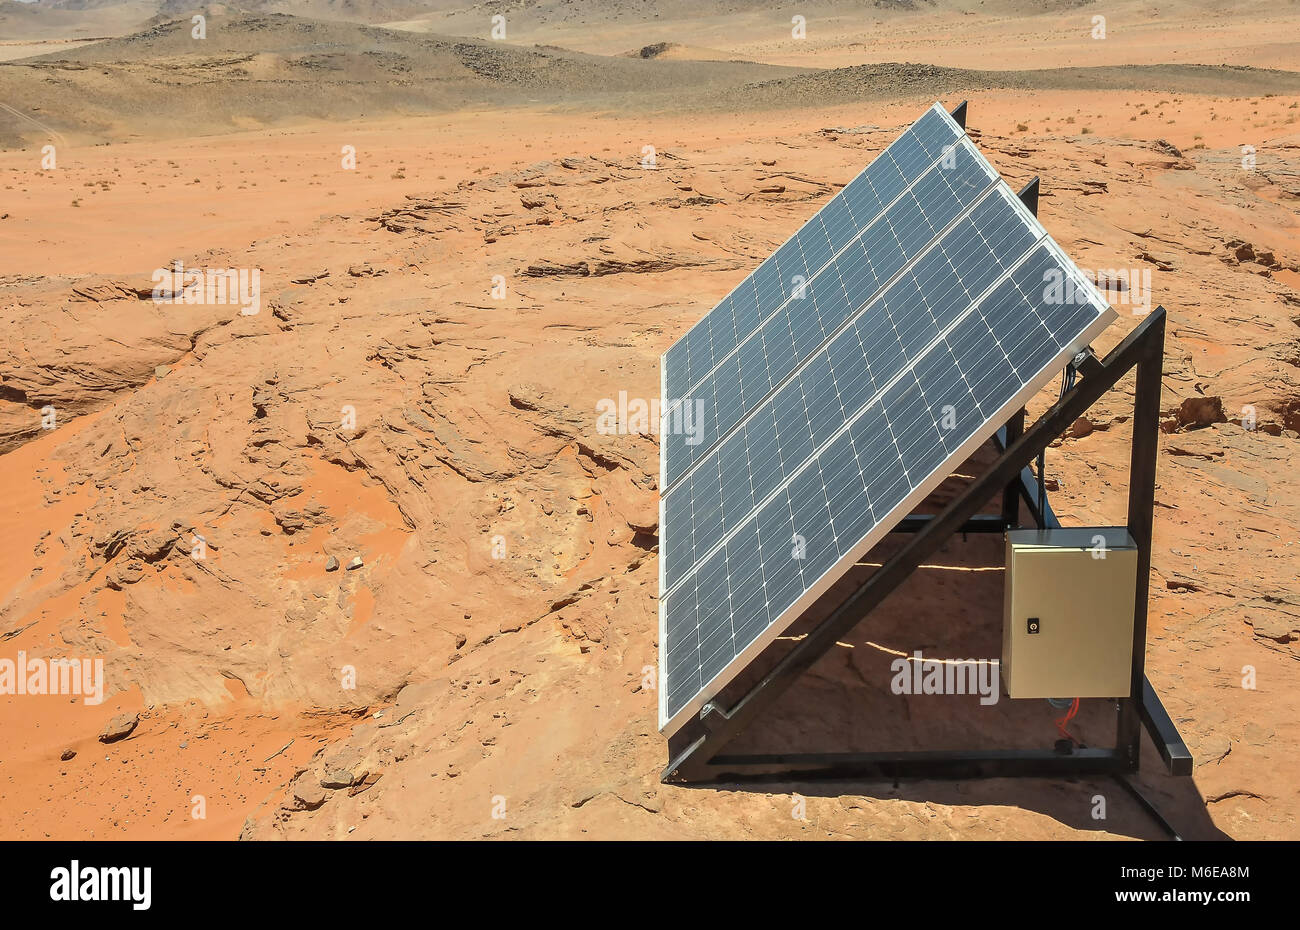 A solar panel used by Bedouins in the desert of Wadi Rum ...